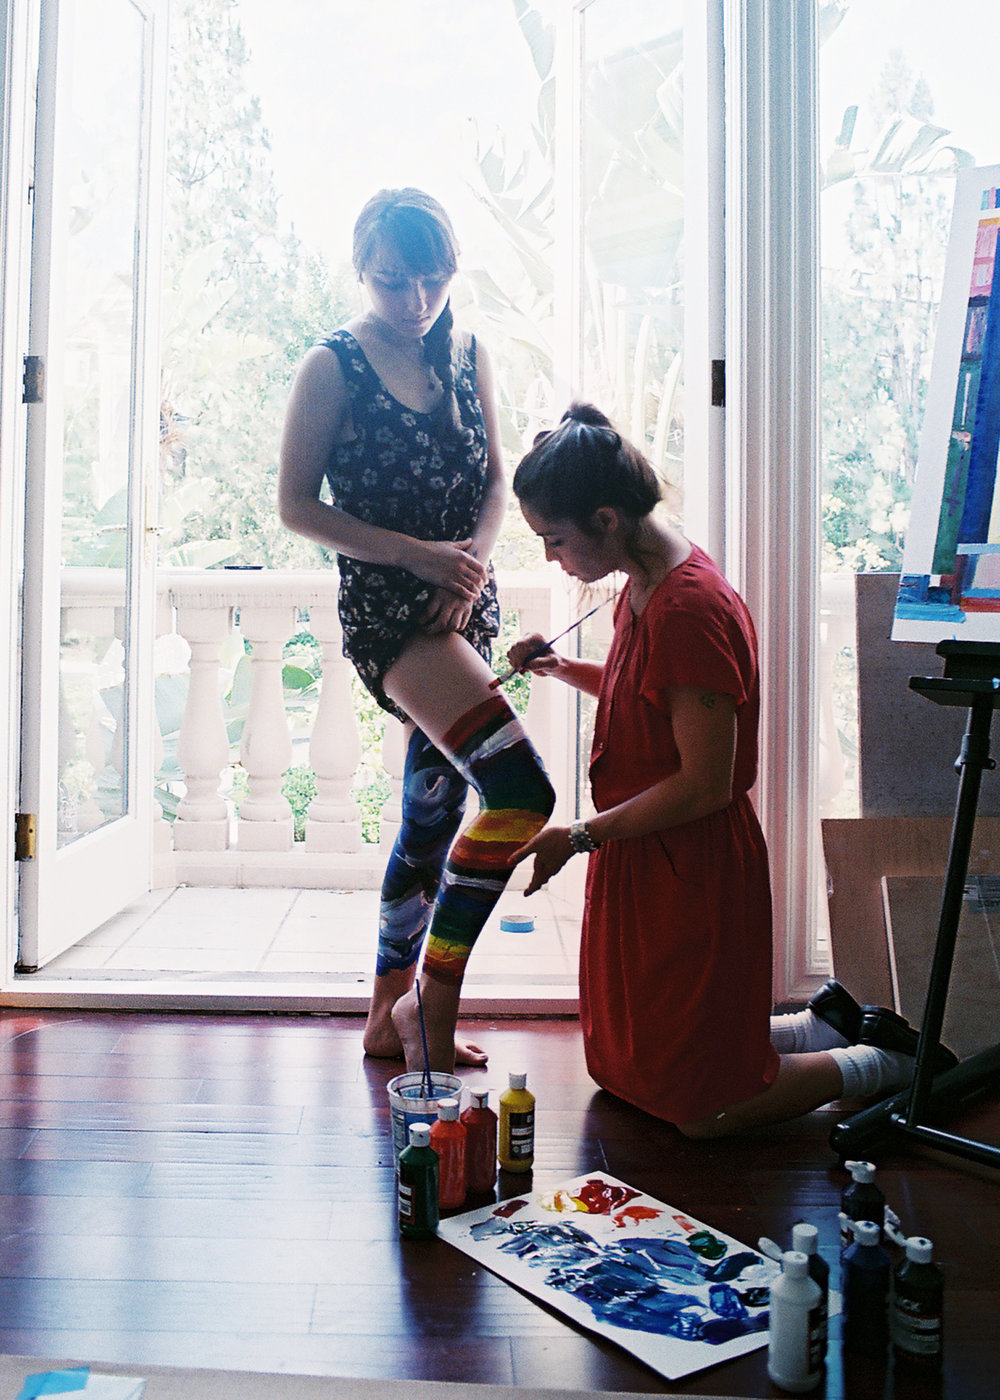 Lola painting Kendra by window on knees.jpg